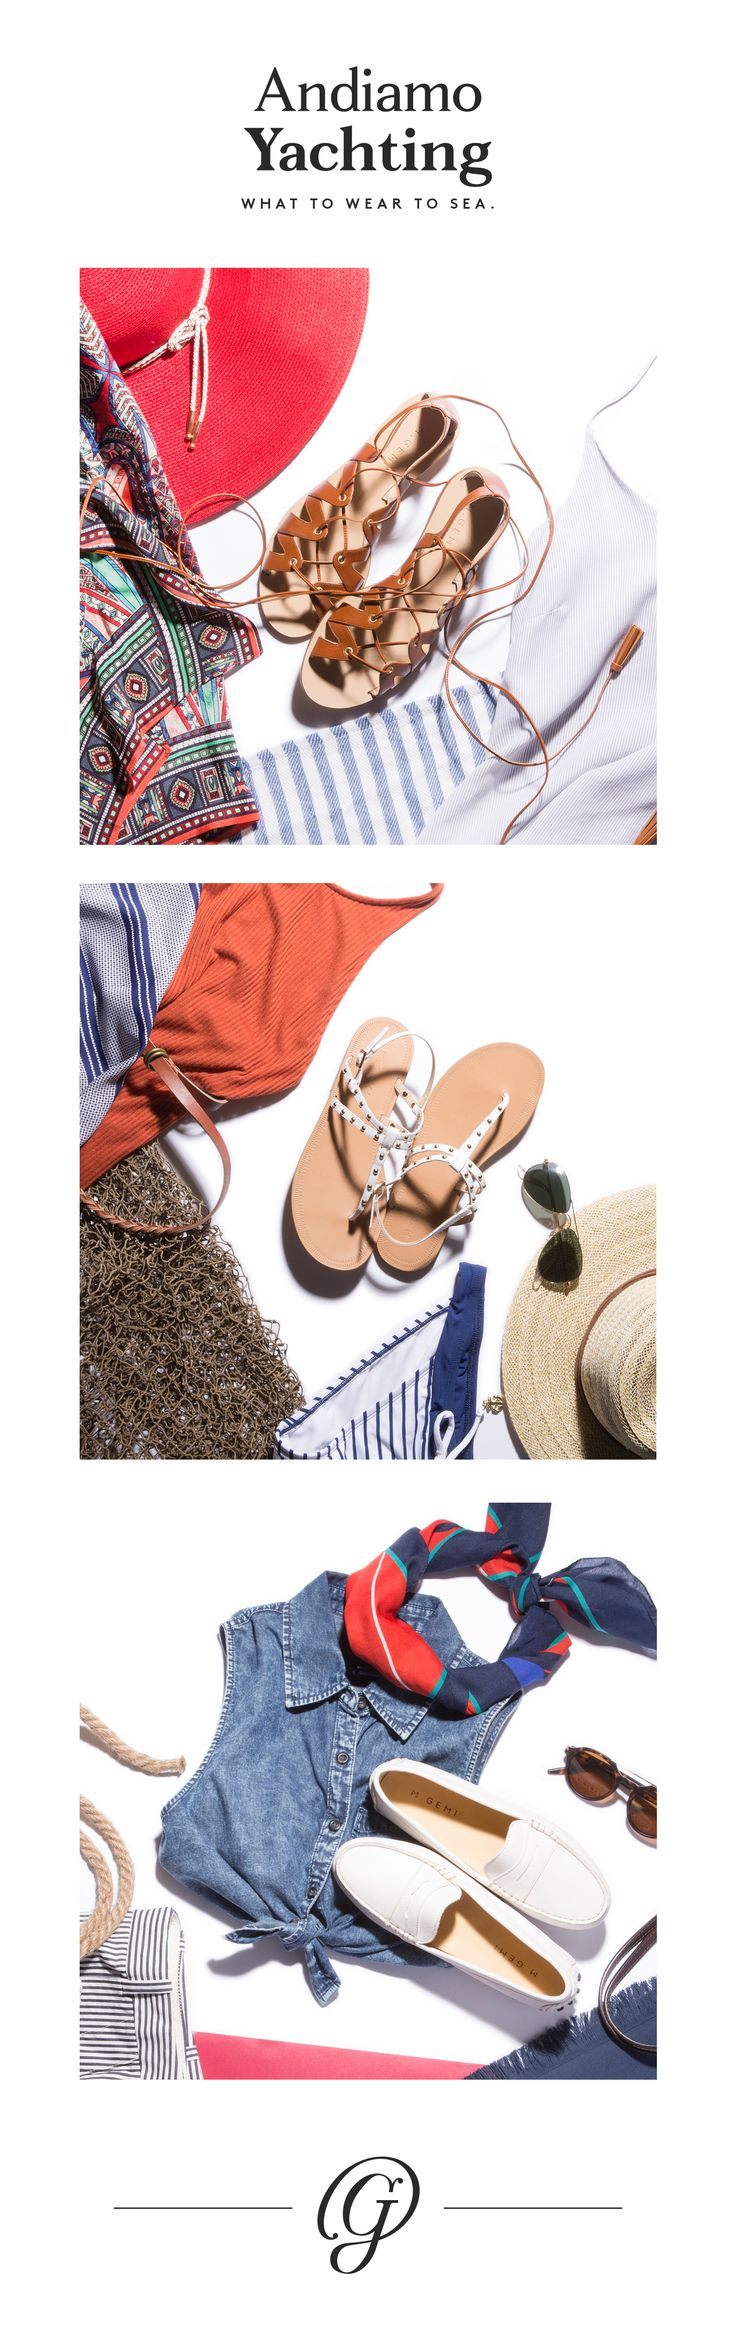 High-seas chic: nautical inspired sandals and moccasins look sharp on a boat and beyond.